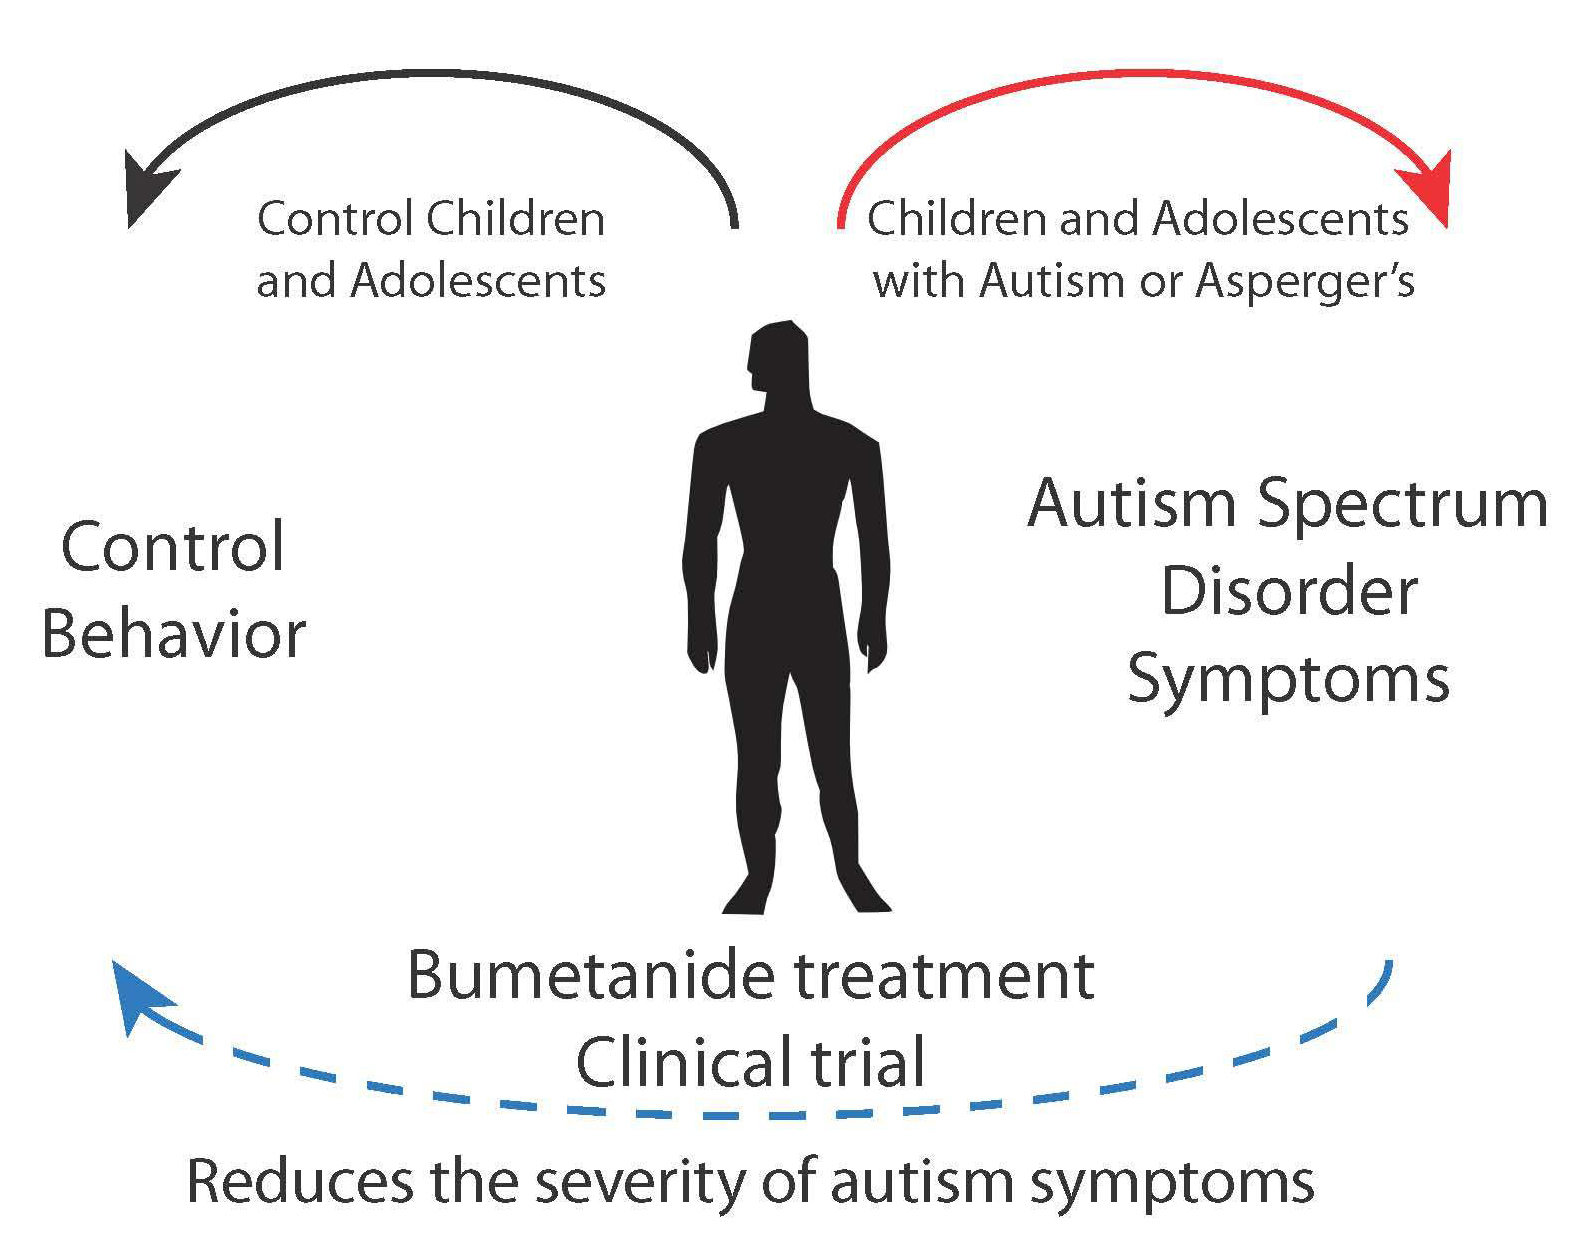 effects of autism disorder on children Unlike the parents who are totally focused on the autistic child's needs, grandparents are concerned about the effects of autism on their adult children (the parents), other grandchildren and future generations.